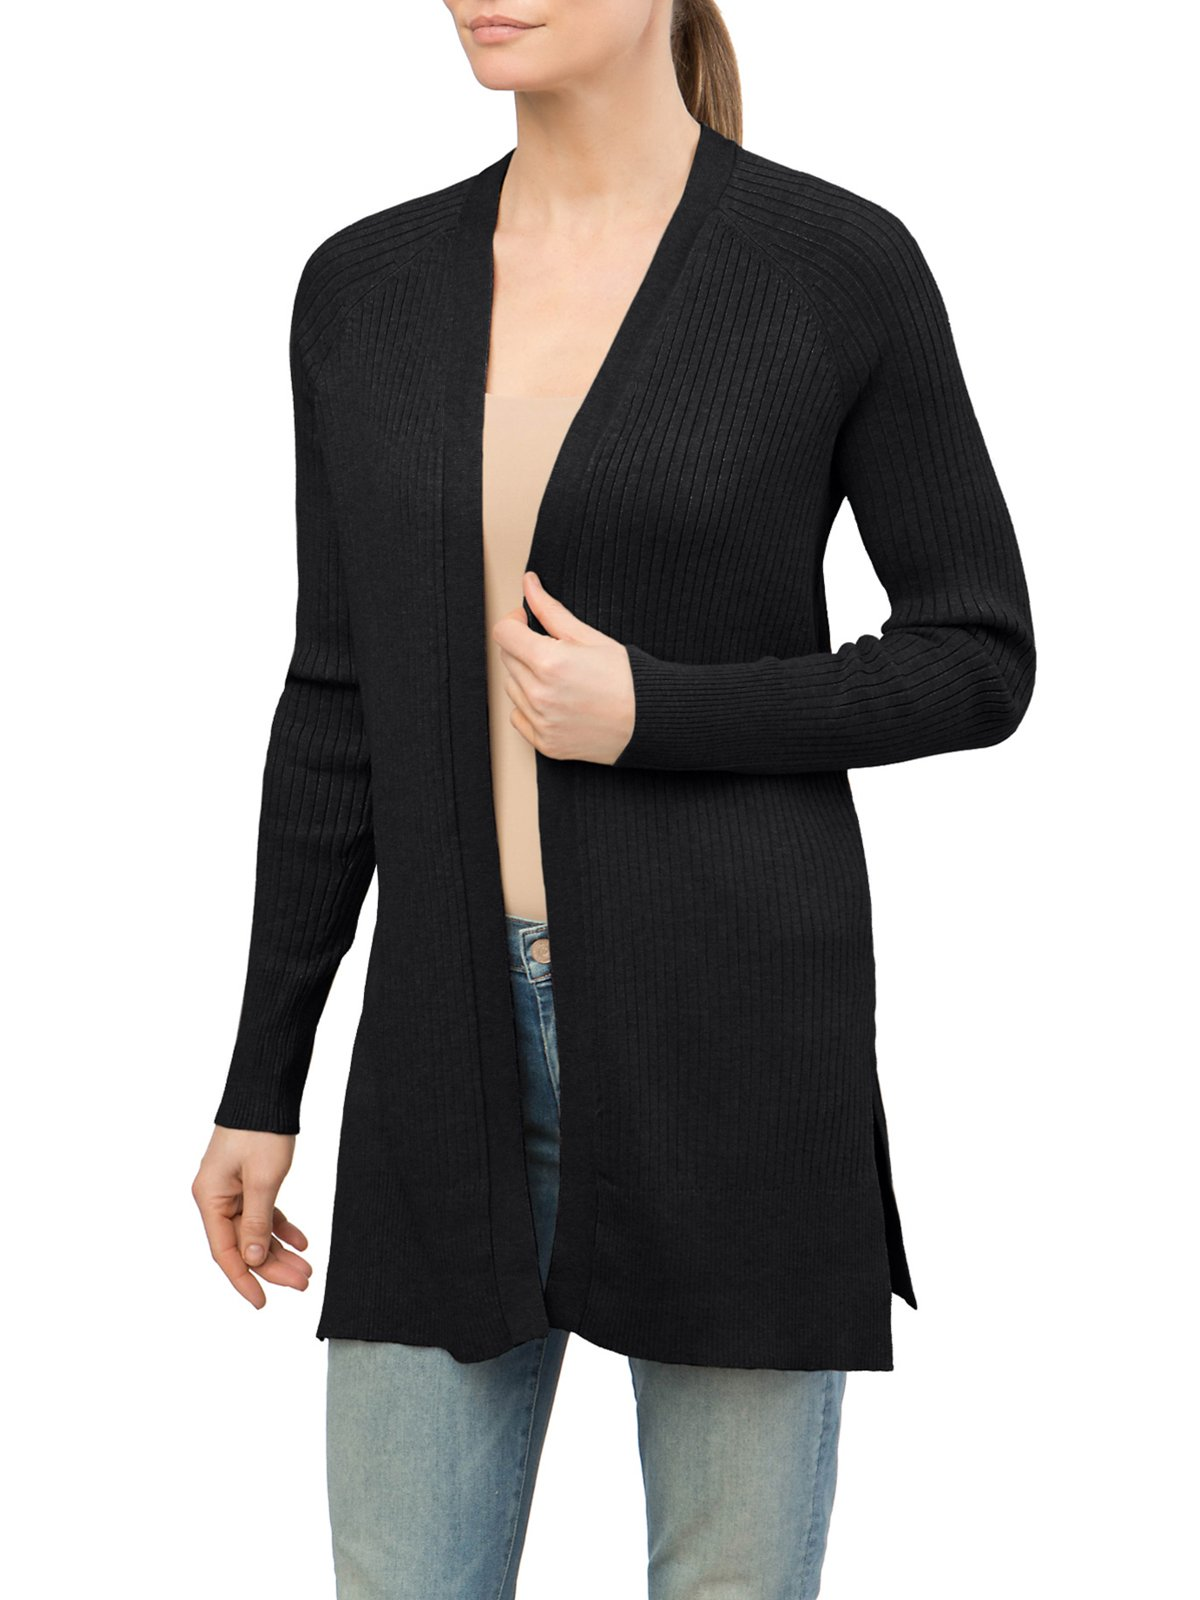 89th&Madison Ribbed Notch Hem Duster Cardigan (XL, Black)